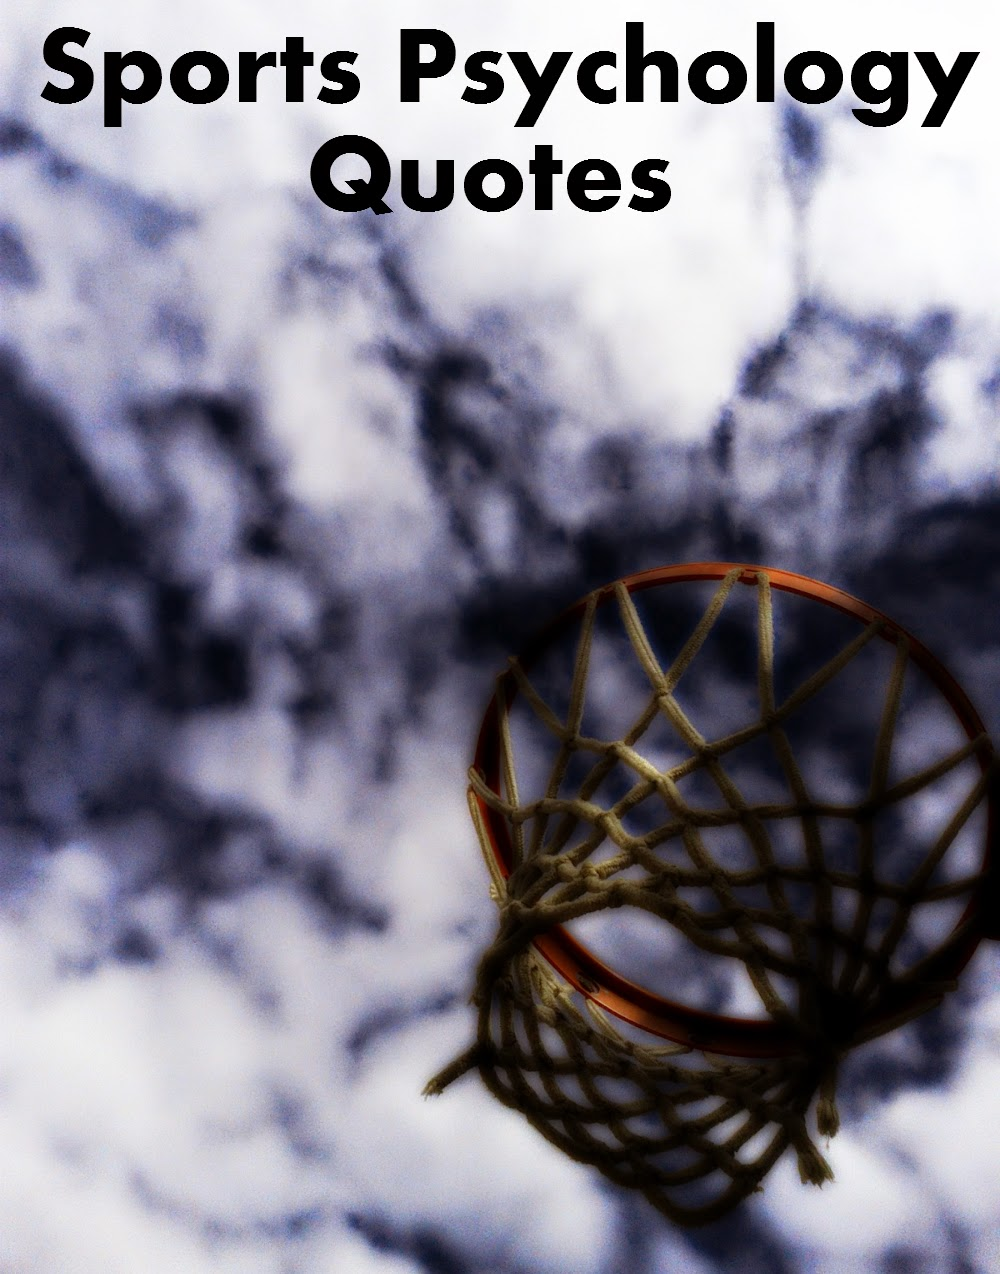 Sports and Performance Psychology Quotes